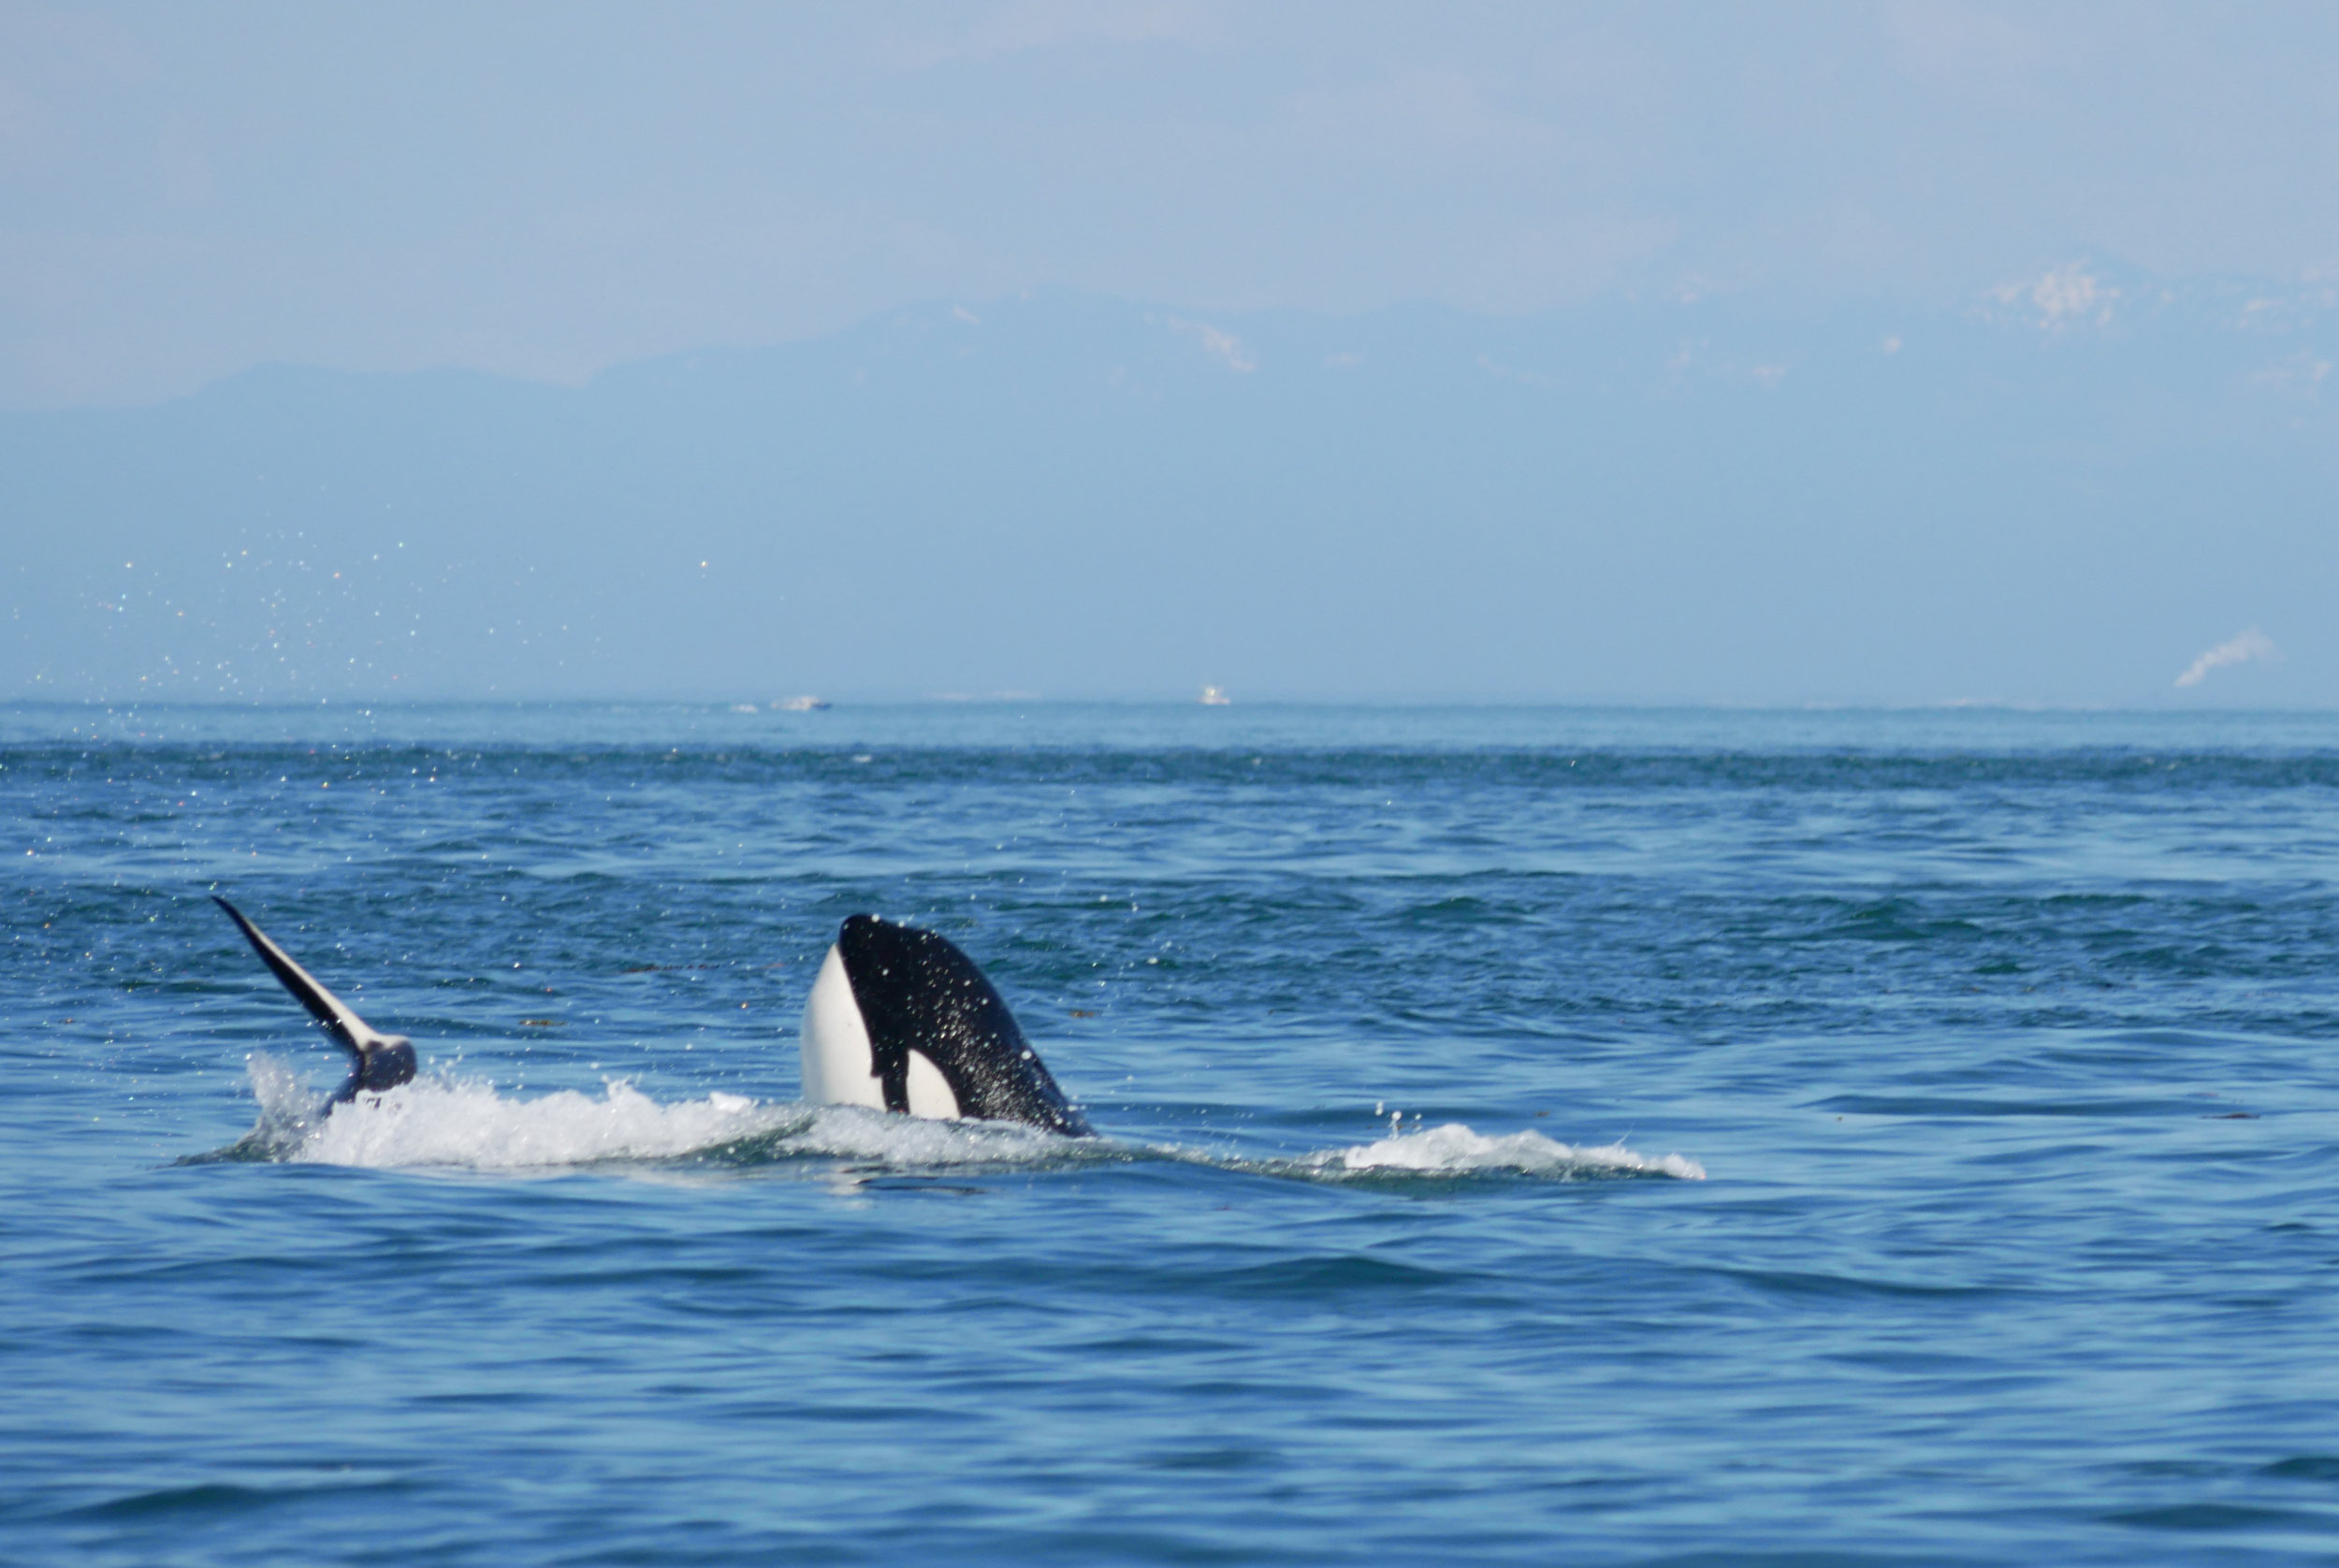 Spyhopping allows an orca to see what's happening above the surface. Photo by Val Watson